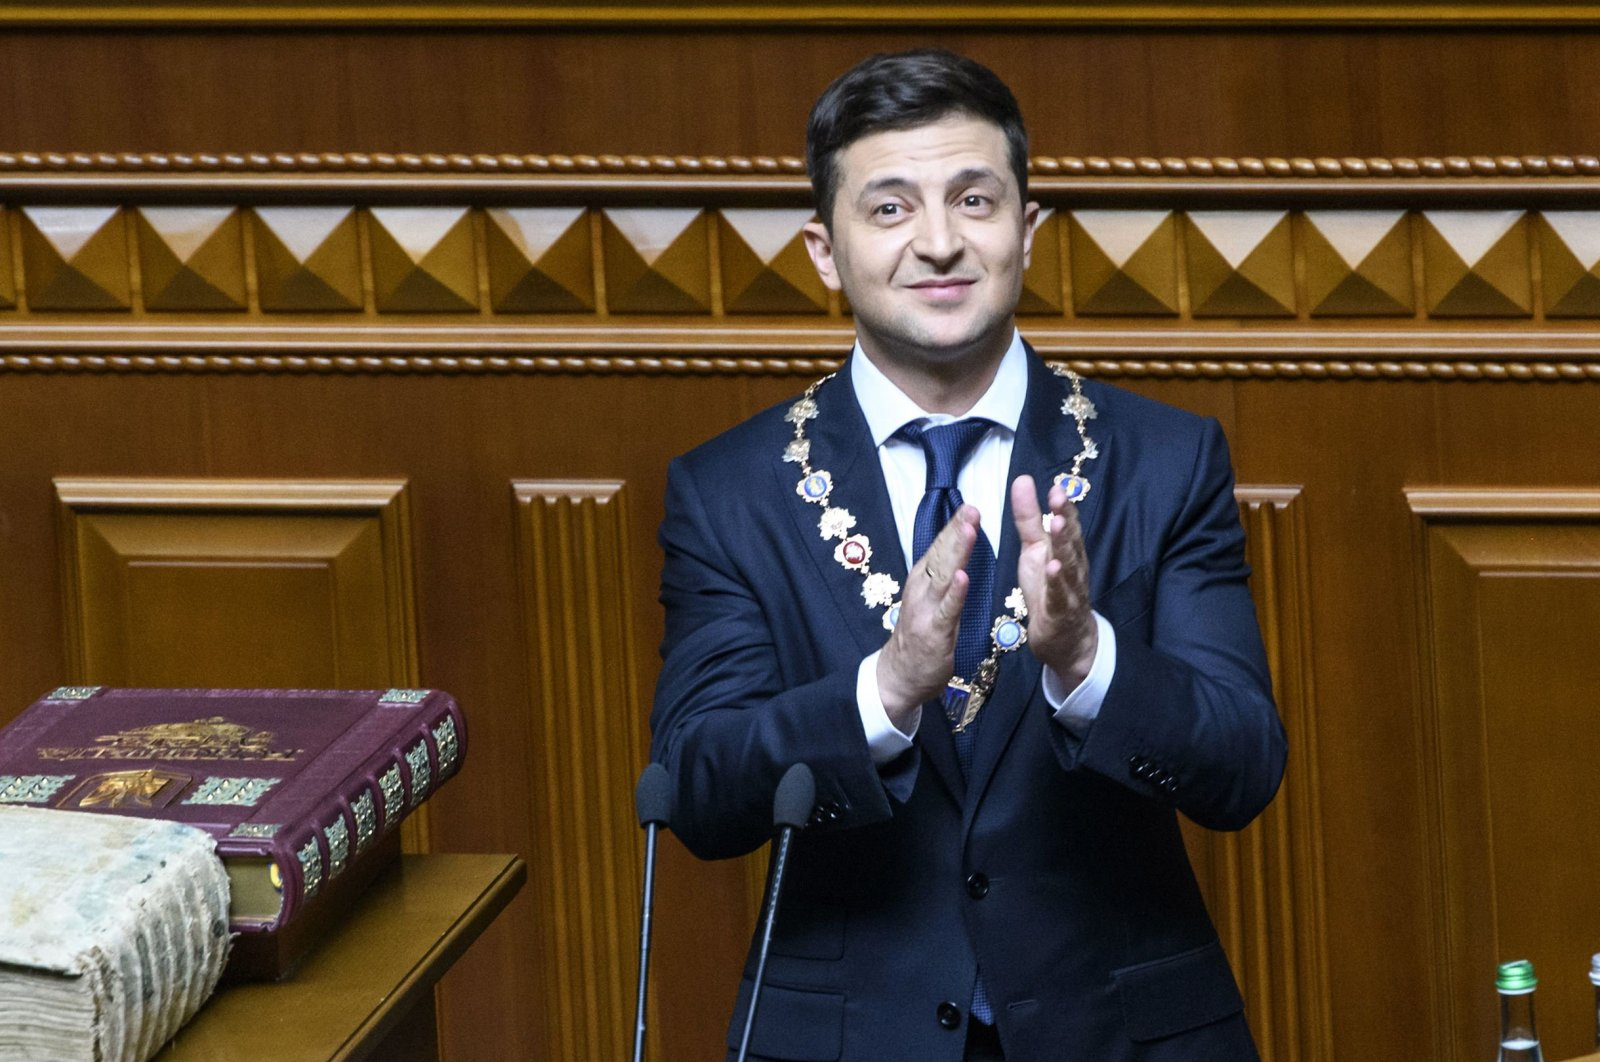 Ukraine's President Volodymyr Zelenskiy applauds during his inauguration ceremony at the parliament in Kyiv, Ukraine, May 20, 2019. (Ukrainian Prime Minister Press-Service Photo via AFP)